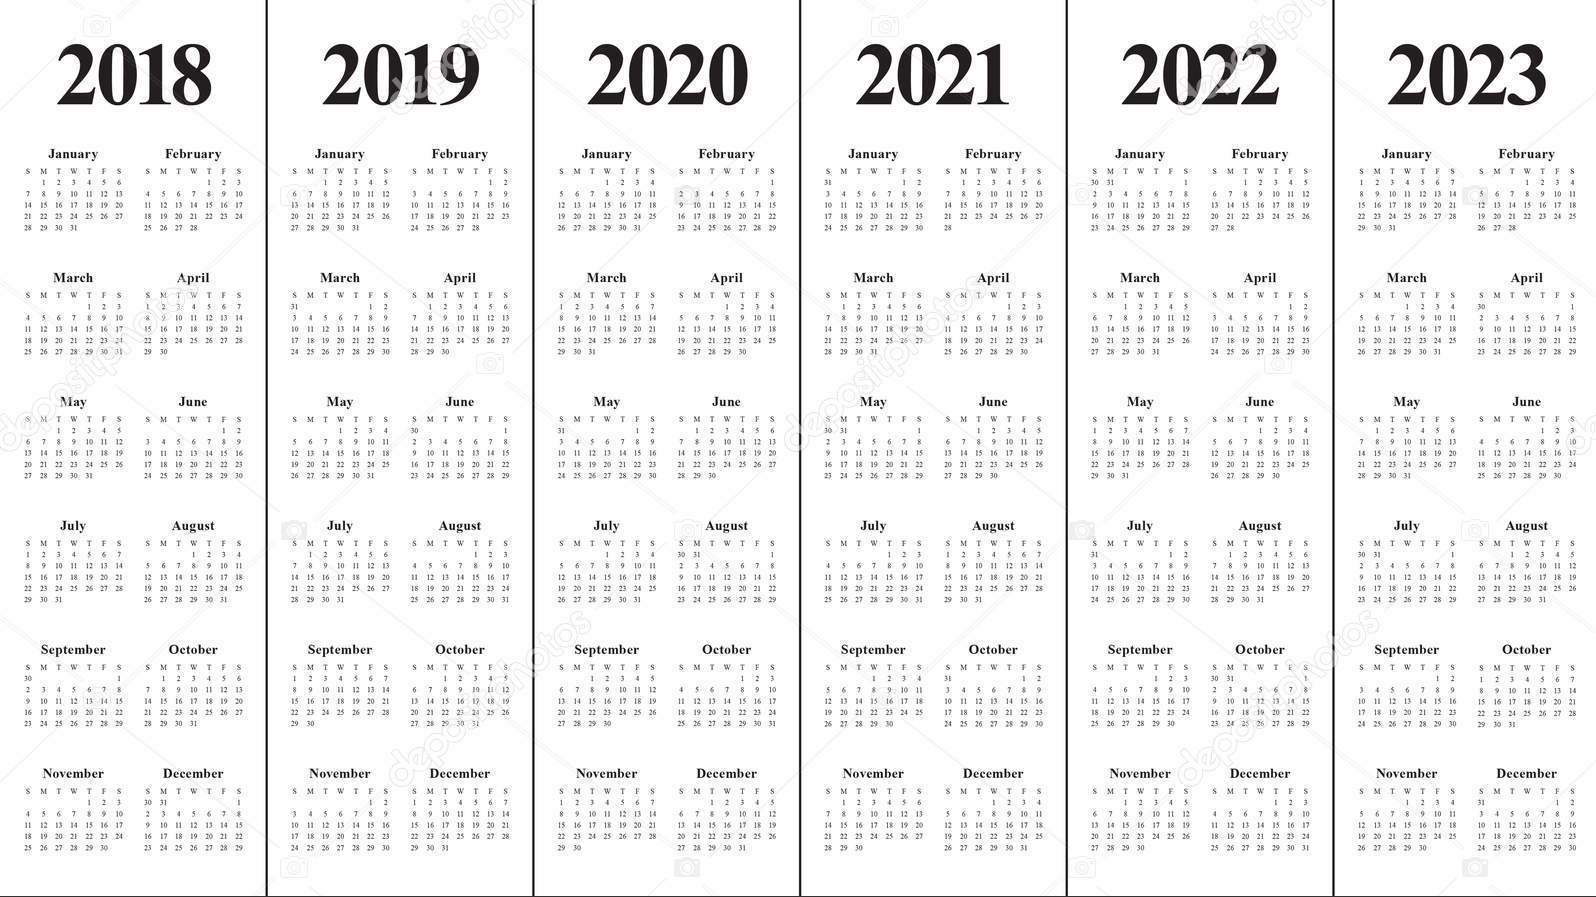 5 Year Calendar 2019 To 2023 With Free Blank PDF Printable Template March